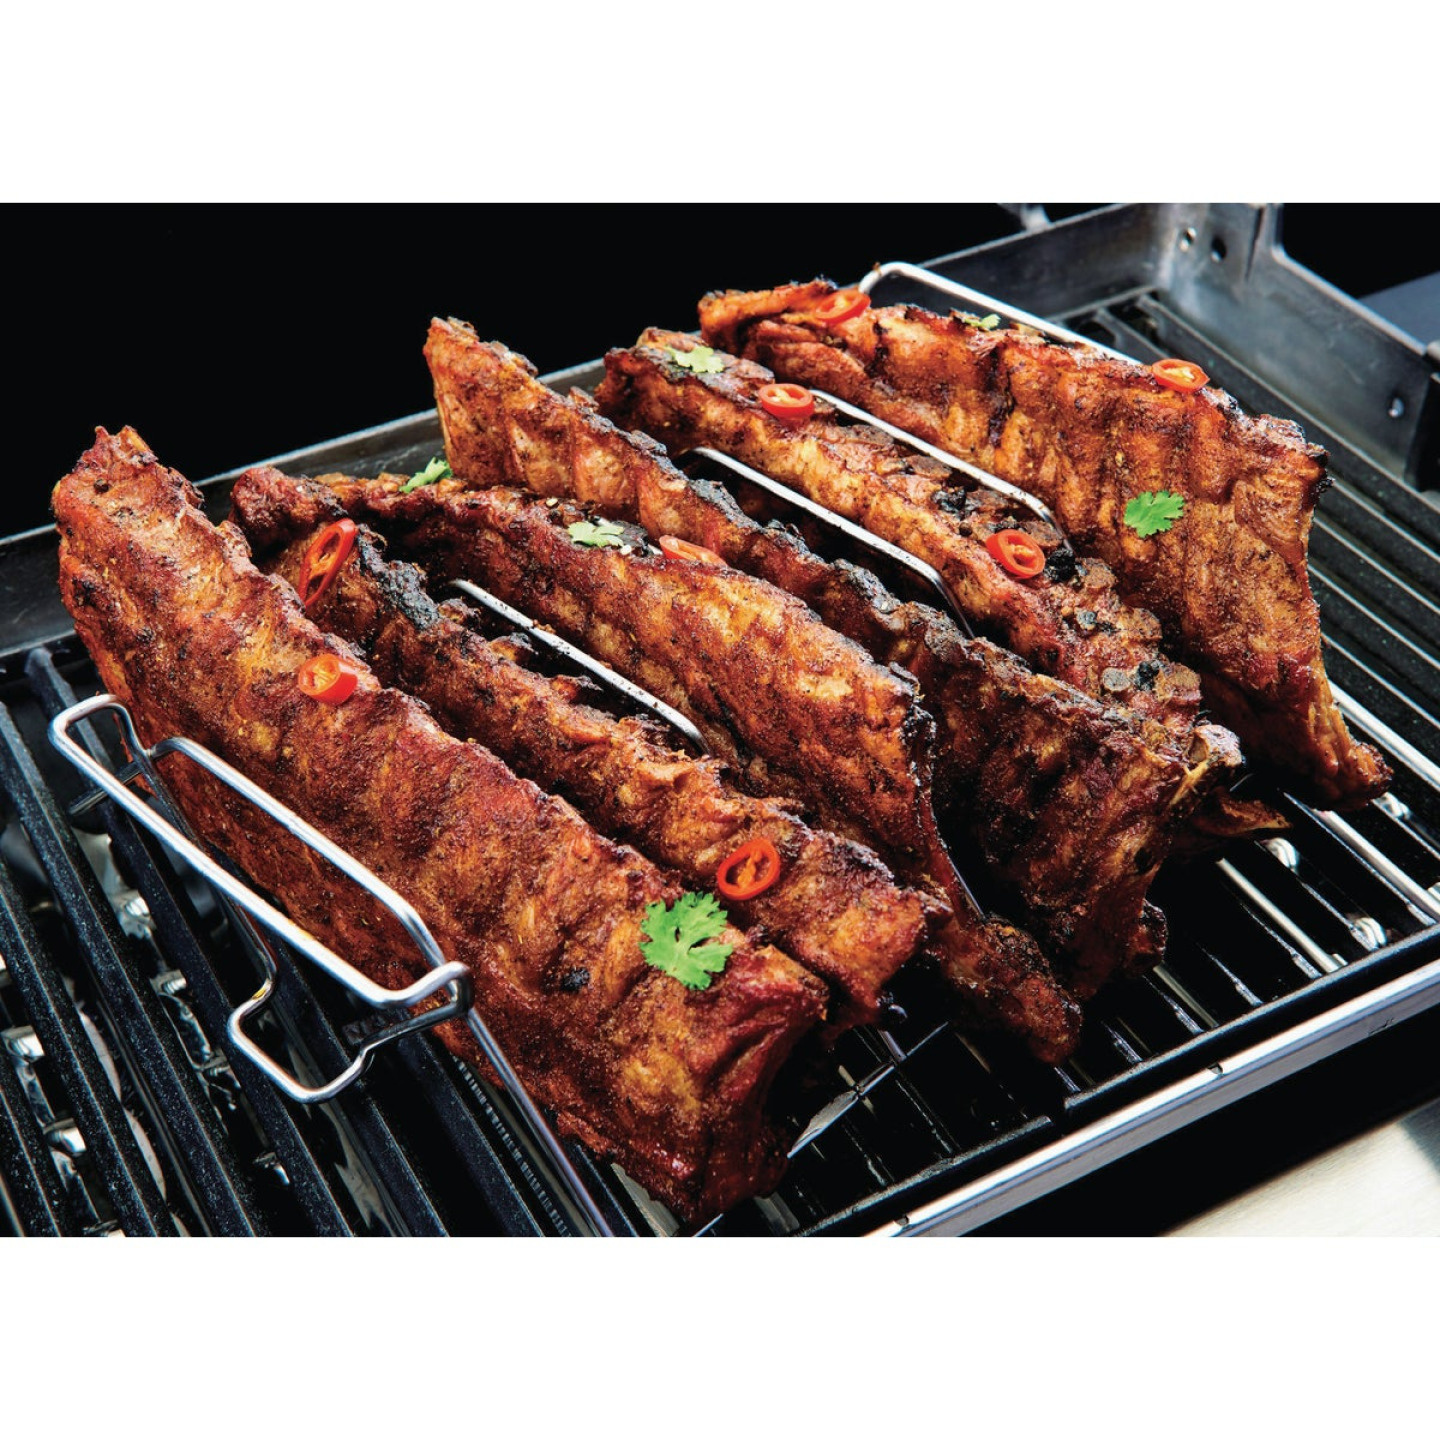 GrillPro 15.5 In. Stainless Steel Rib & Roast Grill Rack Image 4